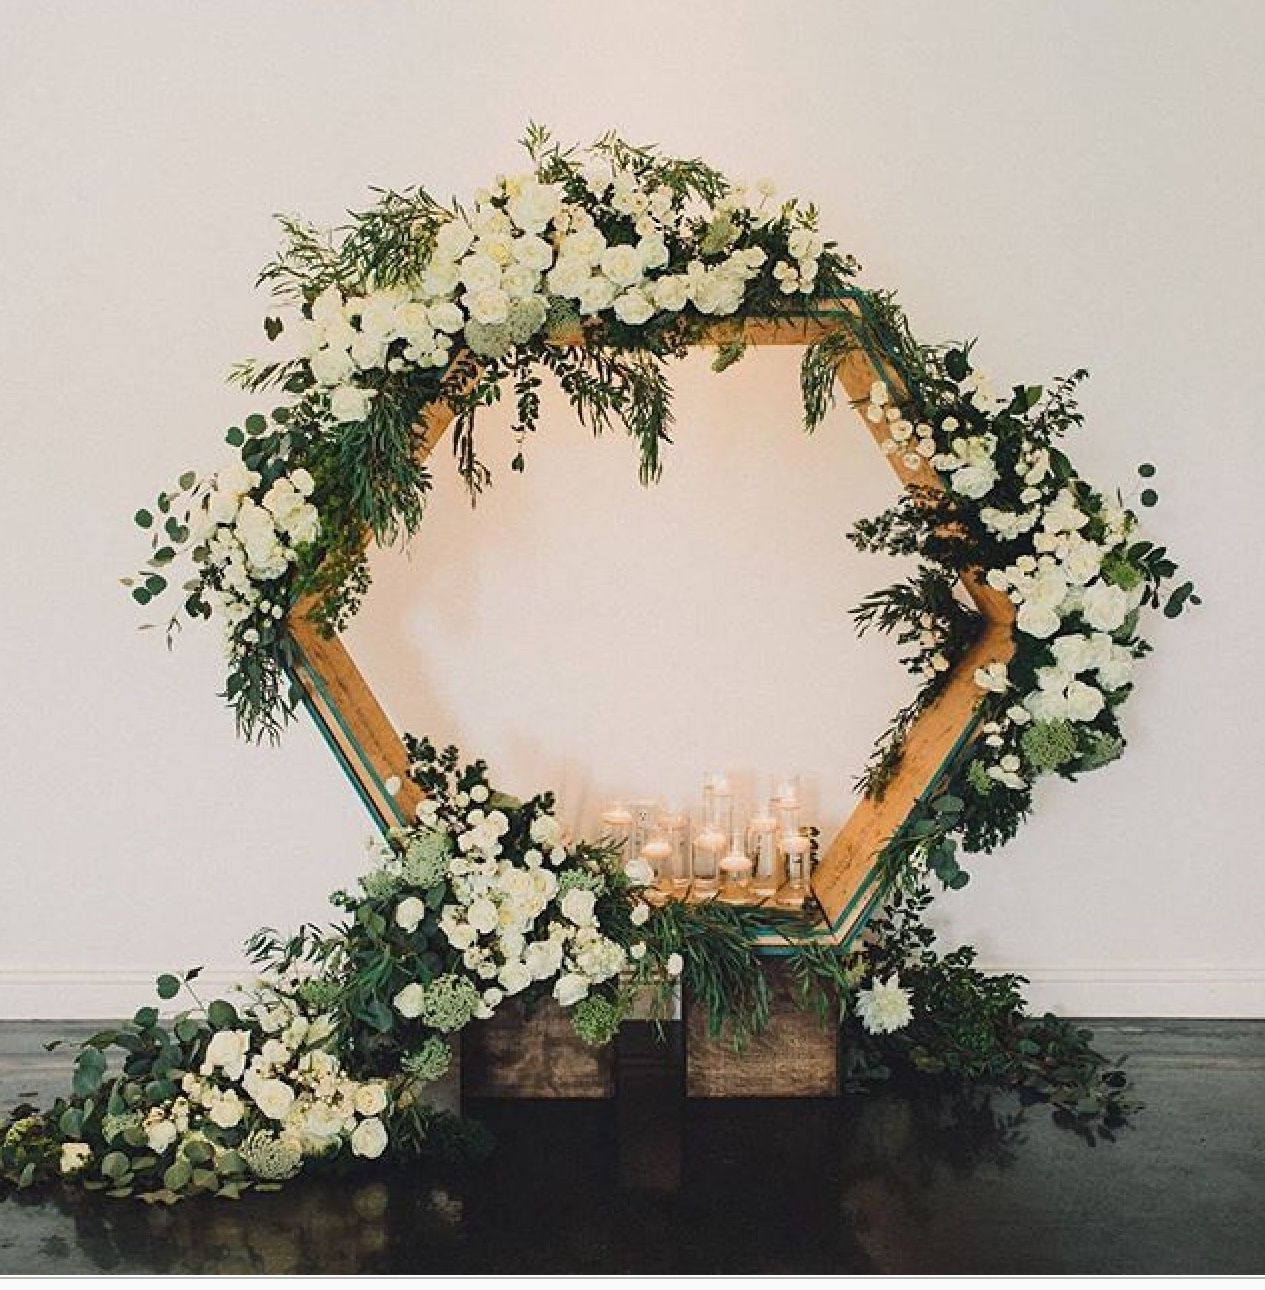 Wedding Altar Hire: Modern Minimalist Wedding Inspiration That We Would Love